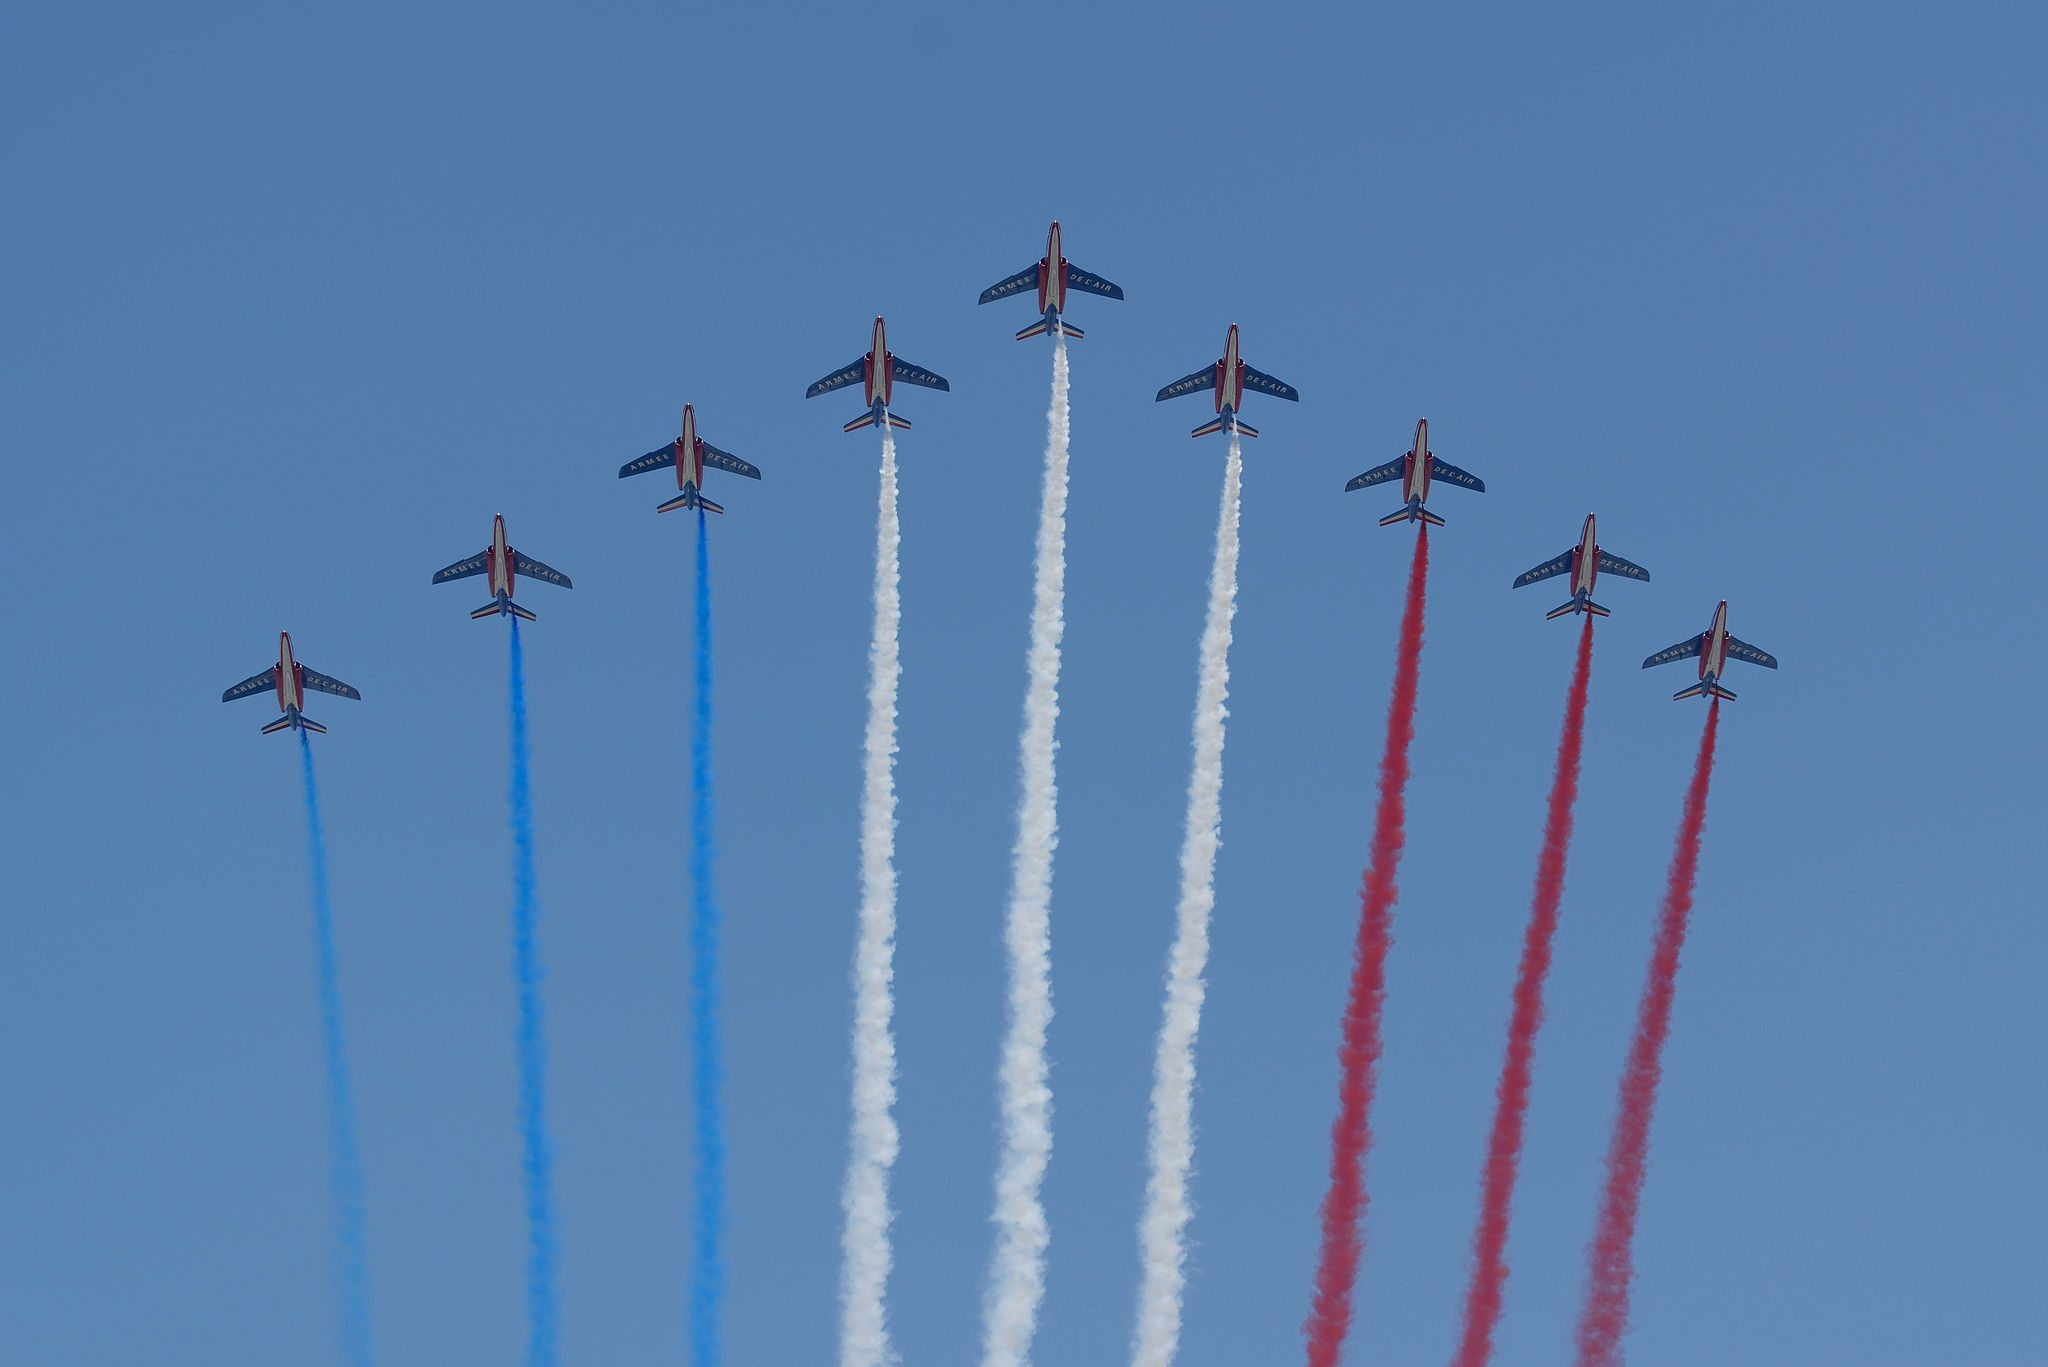 Bastille Day in the U.S.A.